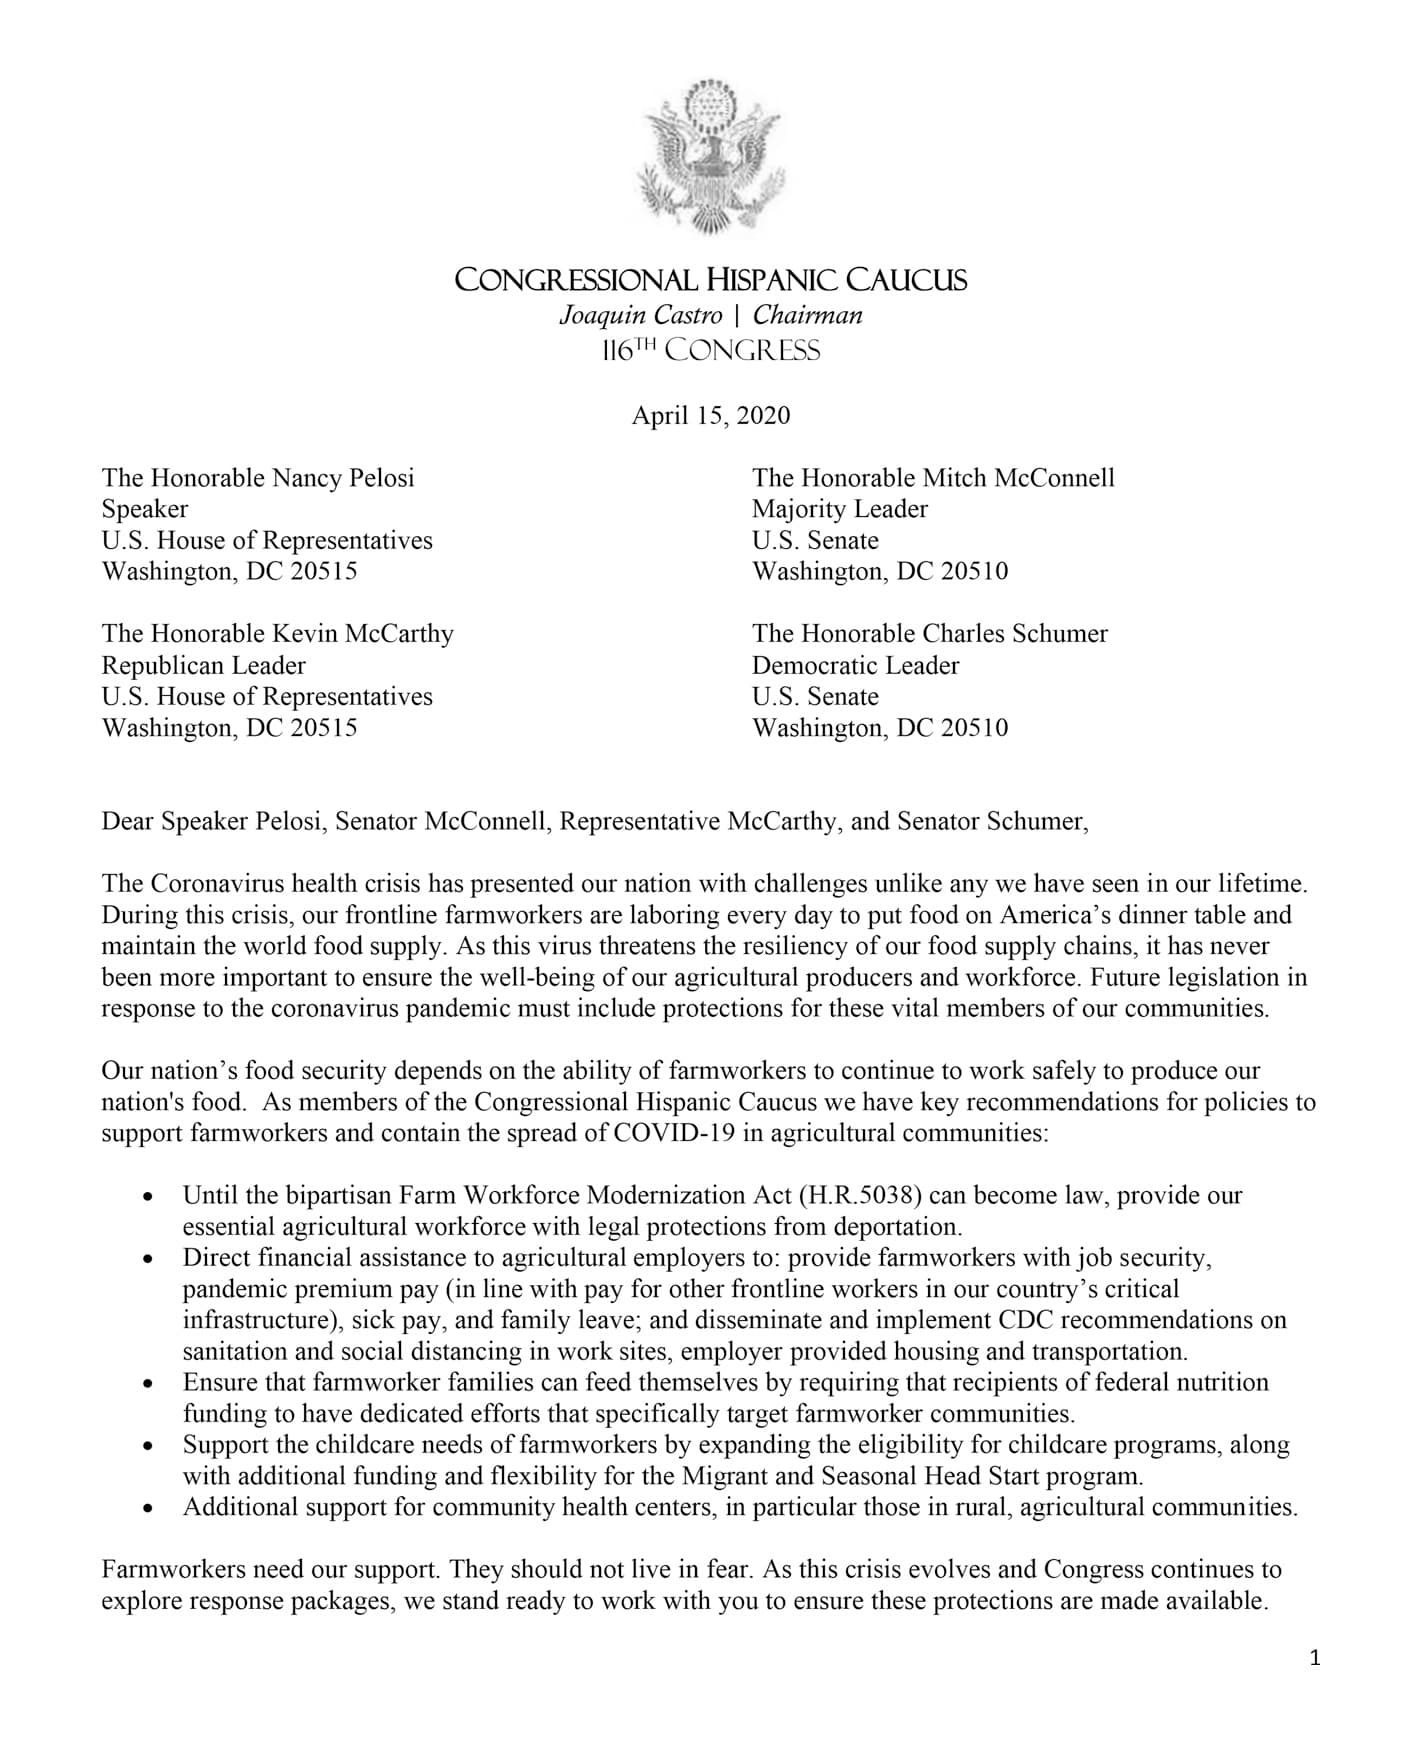 Letter from the Congressional Hispanic Caucus urging COVID-19 protections for farmworkers